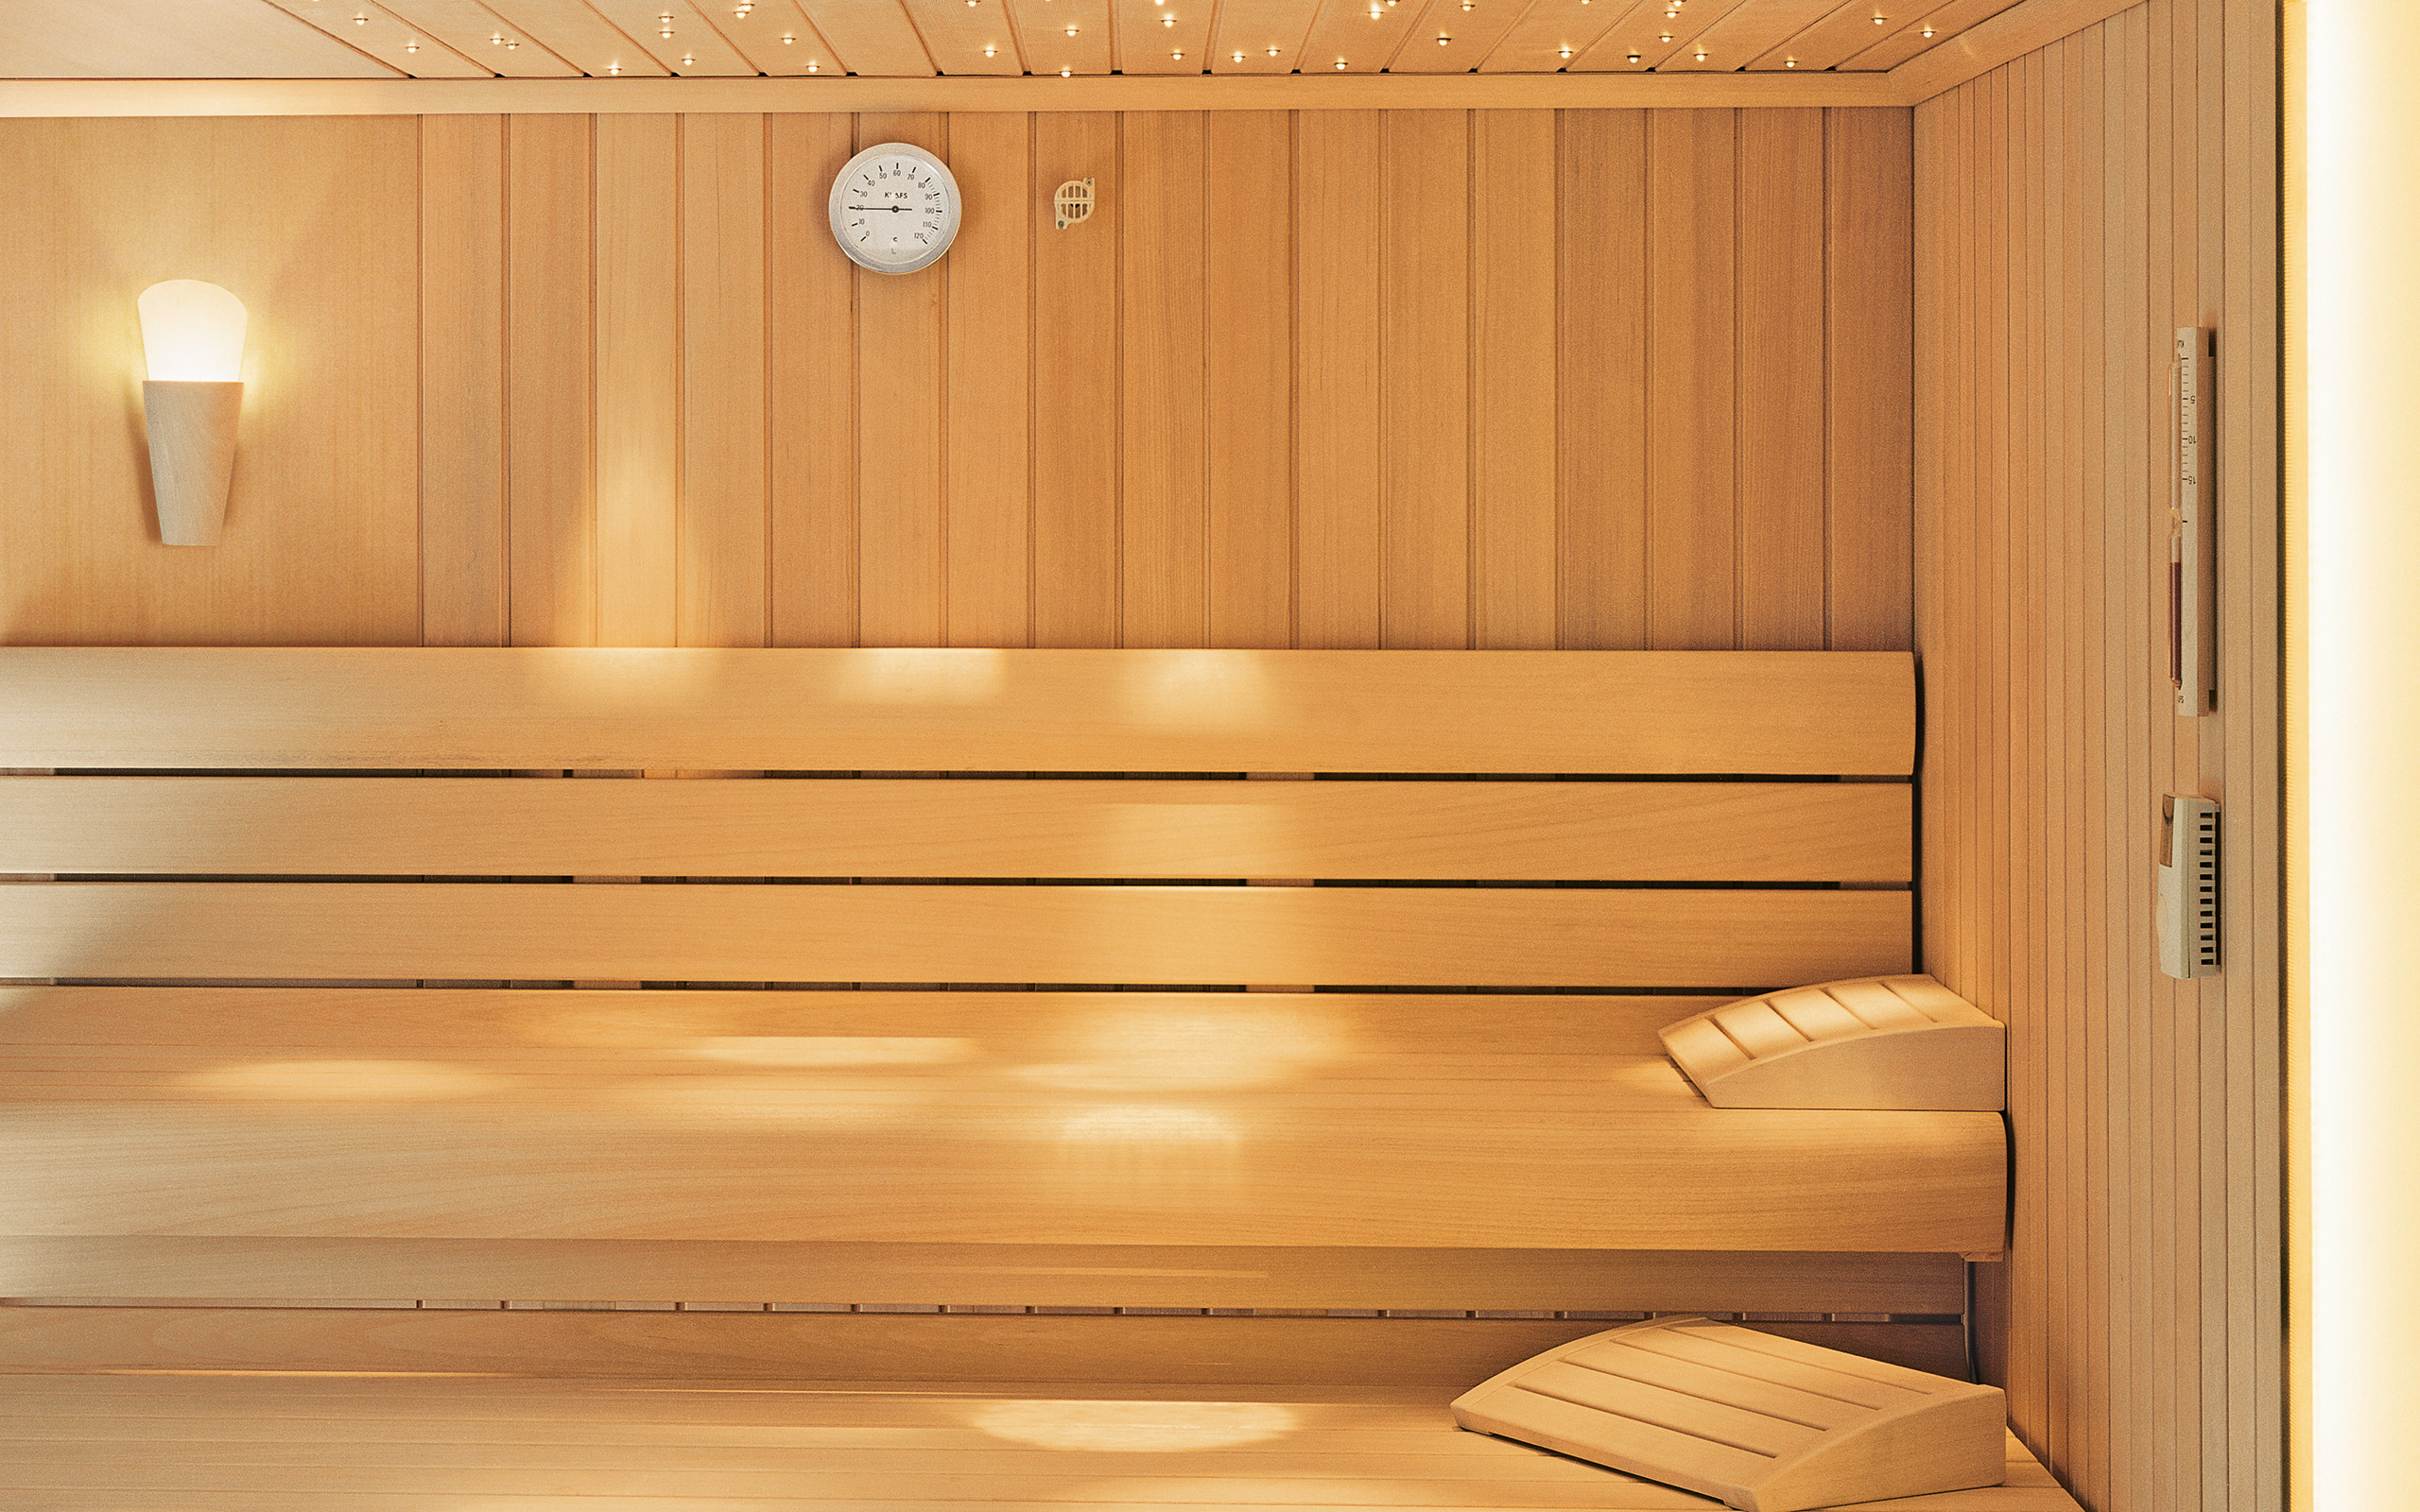 design sauna proteo die lebhafte und offene sauna. Black Bedroom Furniture Sets. Home Design Ideas